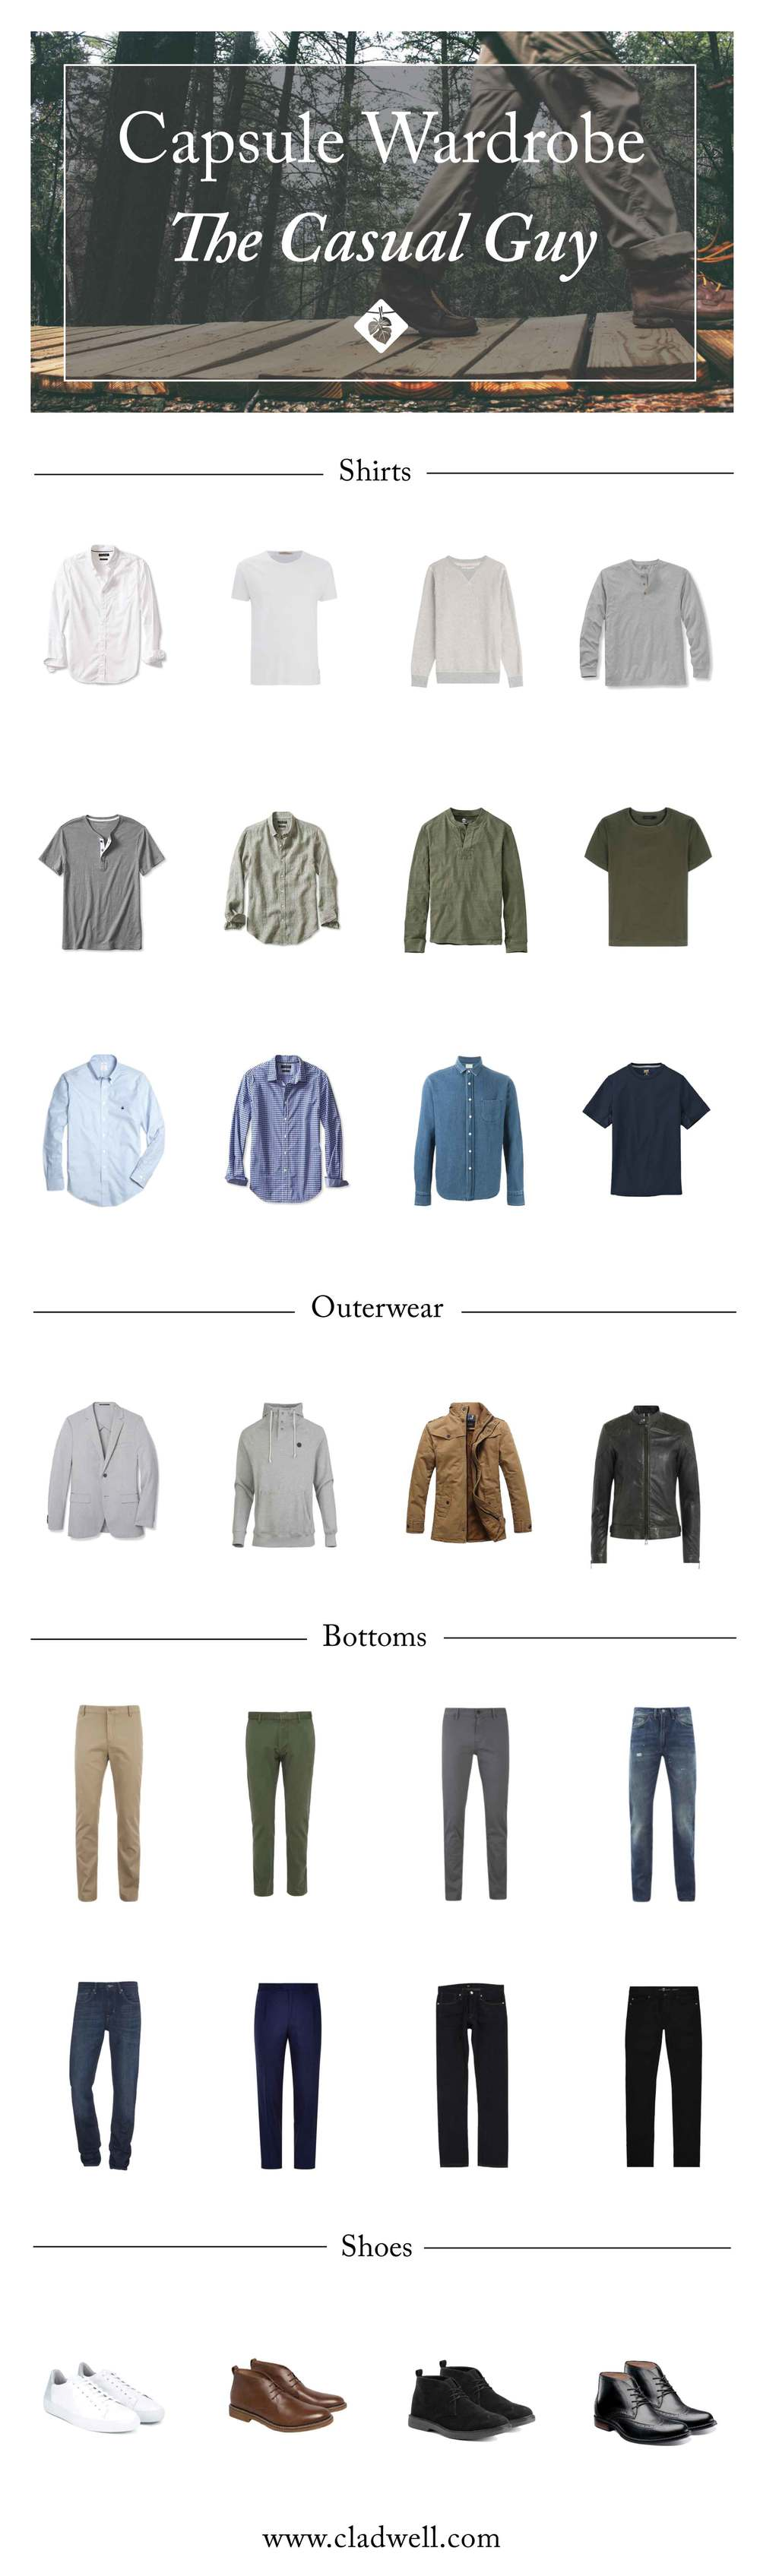 A Capsule for The Casual Guy — Cladwell